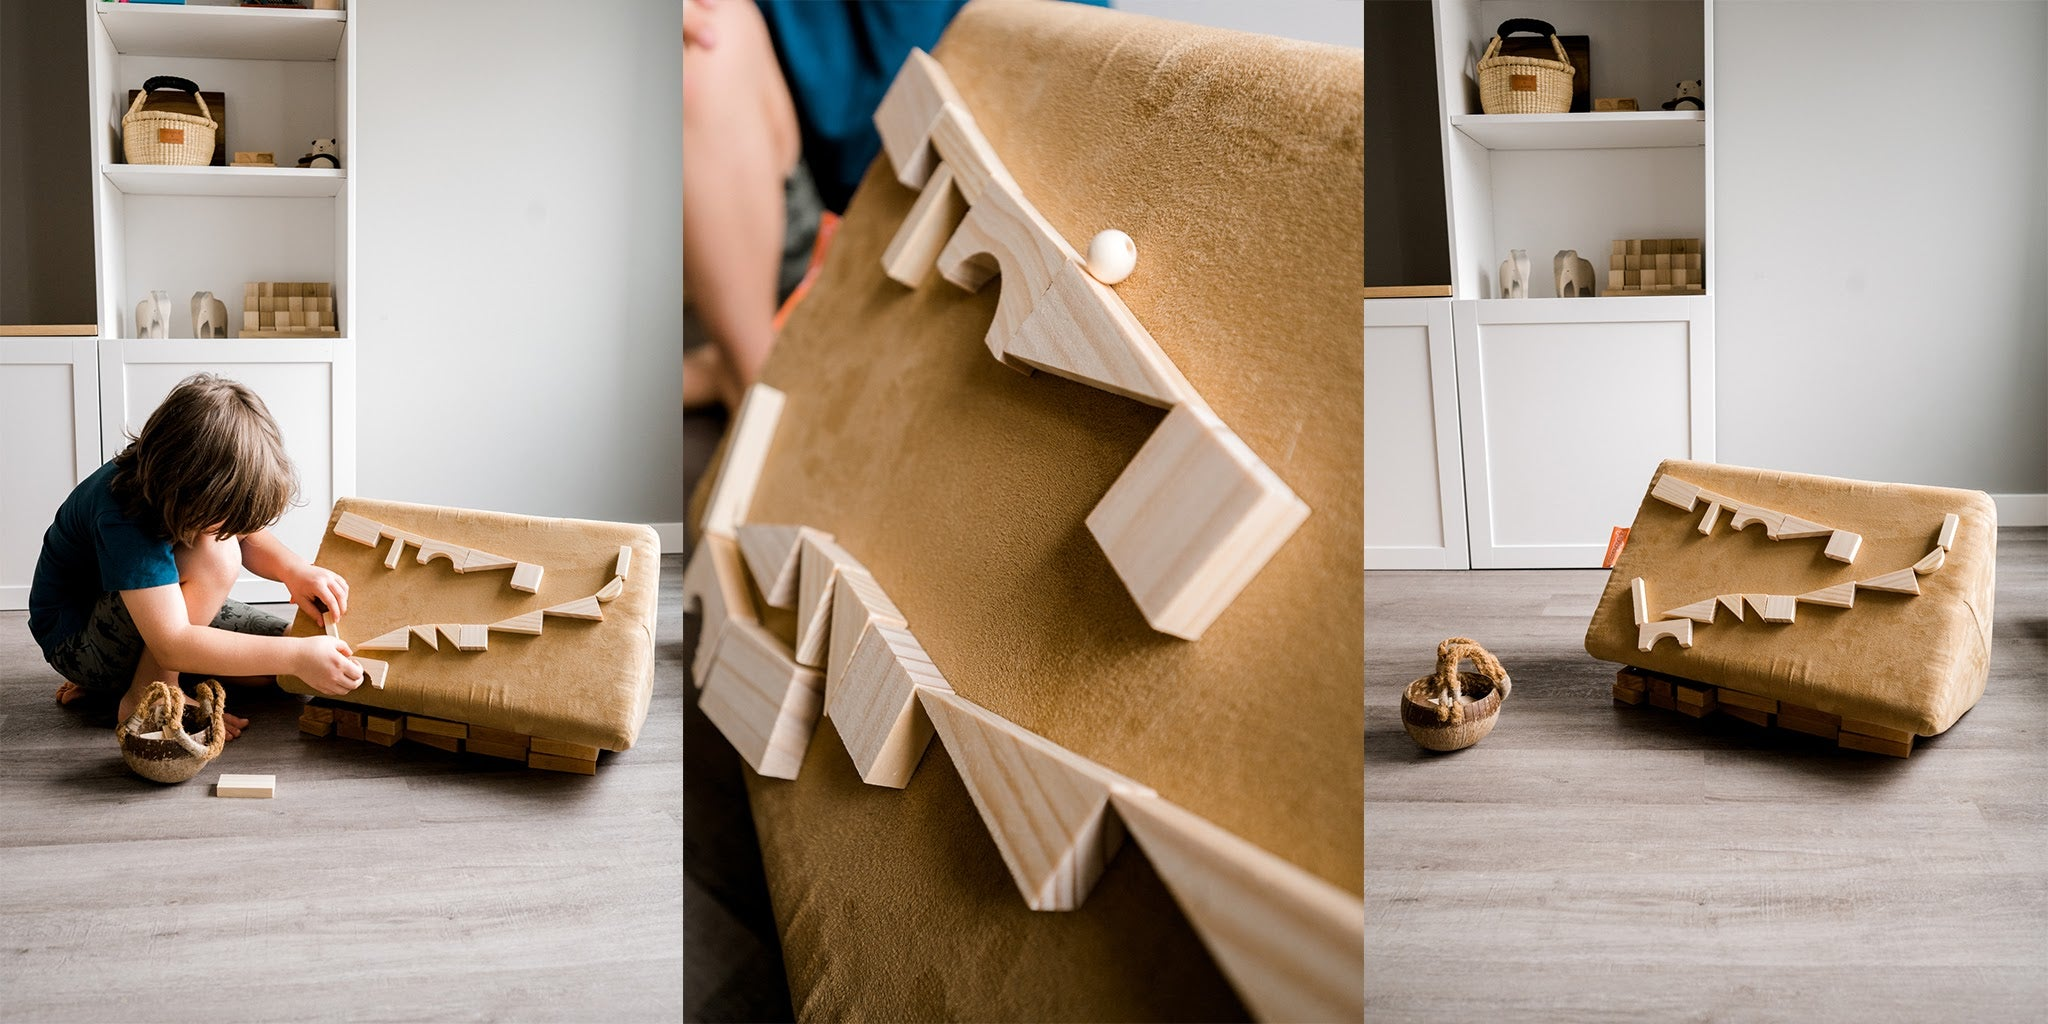 Options for Mini-size ball runs, with wooden toys on a Nugget pillow